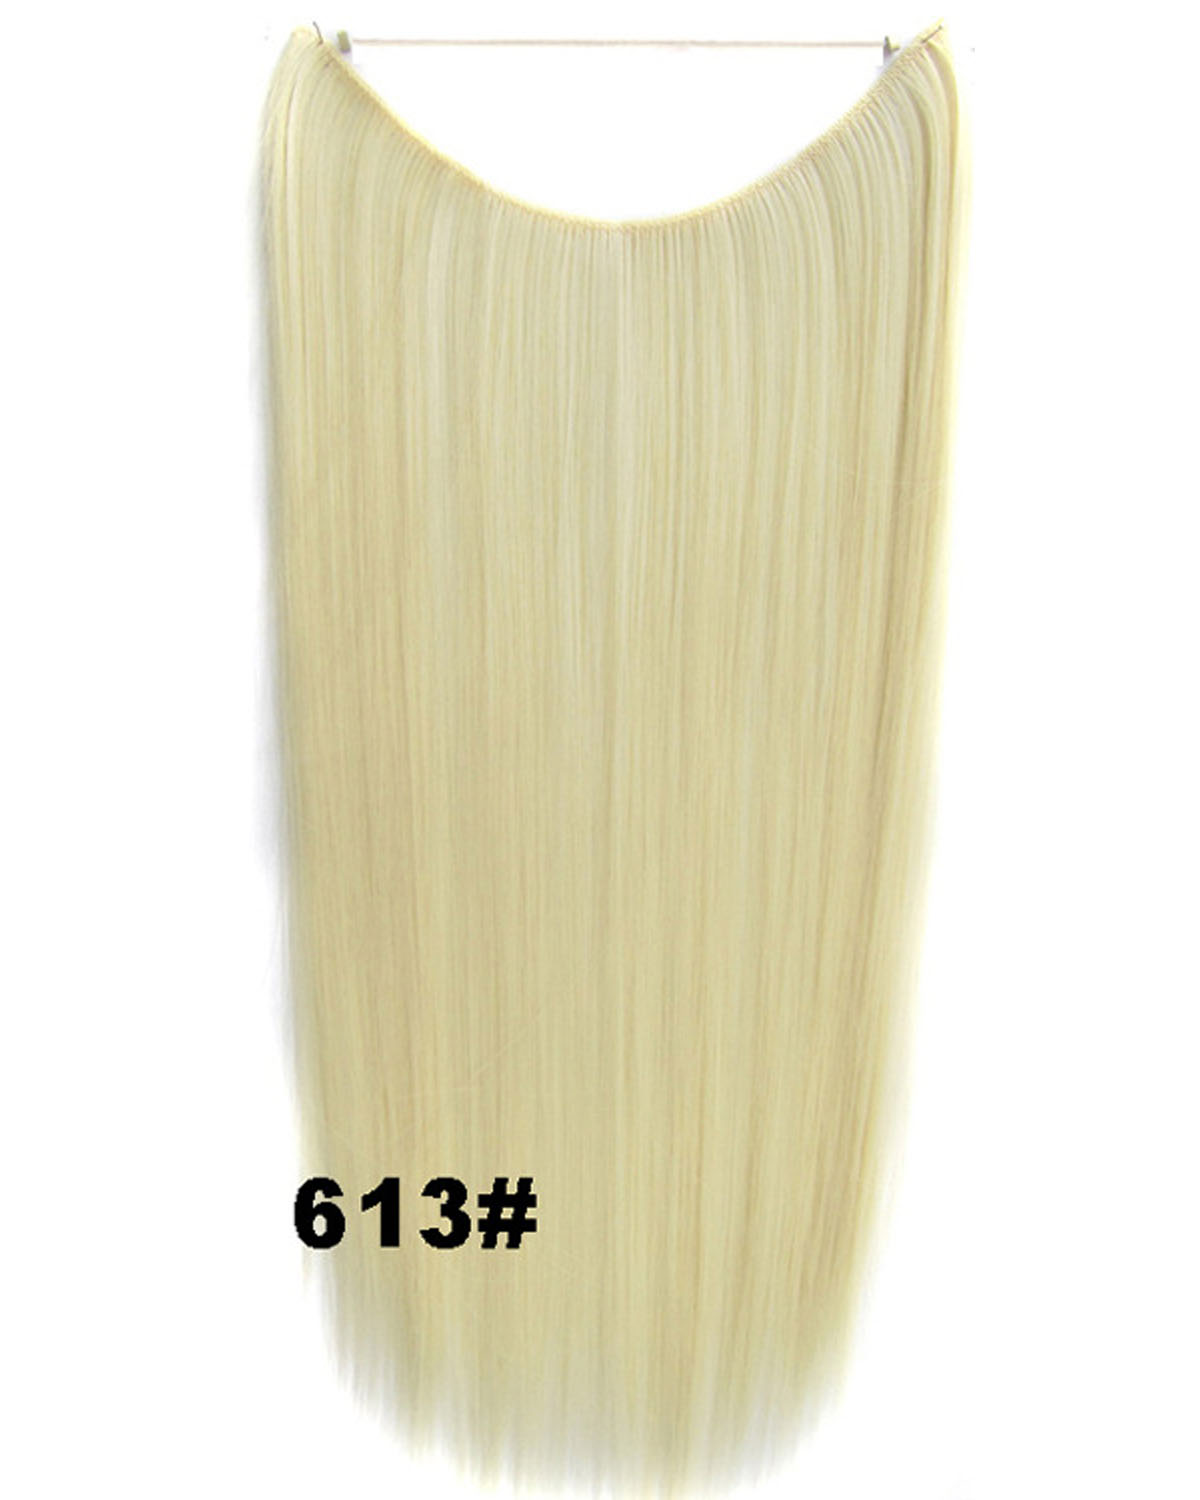 22 Inch Lady Shining Straight long One Piece Miracle Wire Flip in Synthetic Hair Extension613#